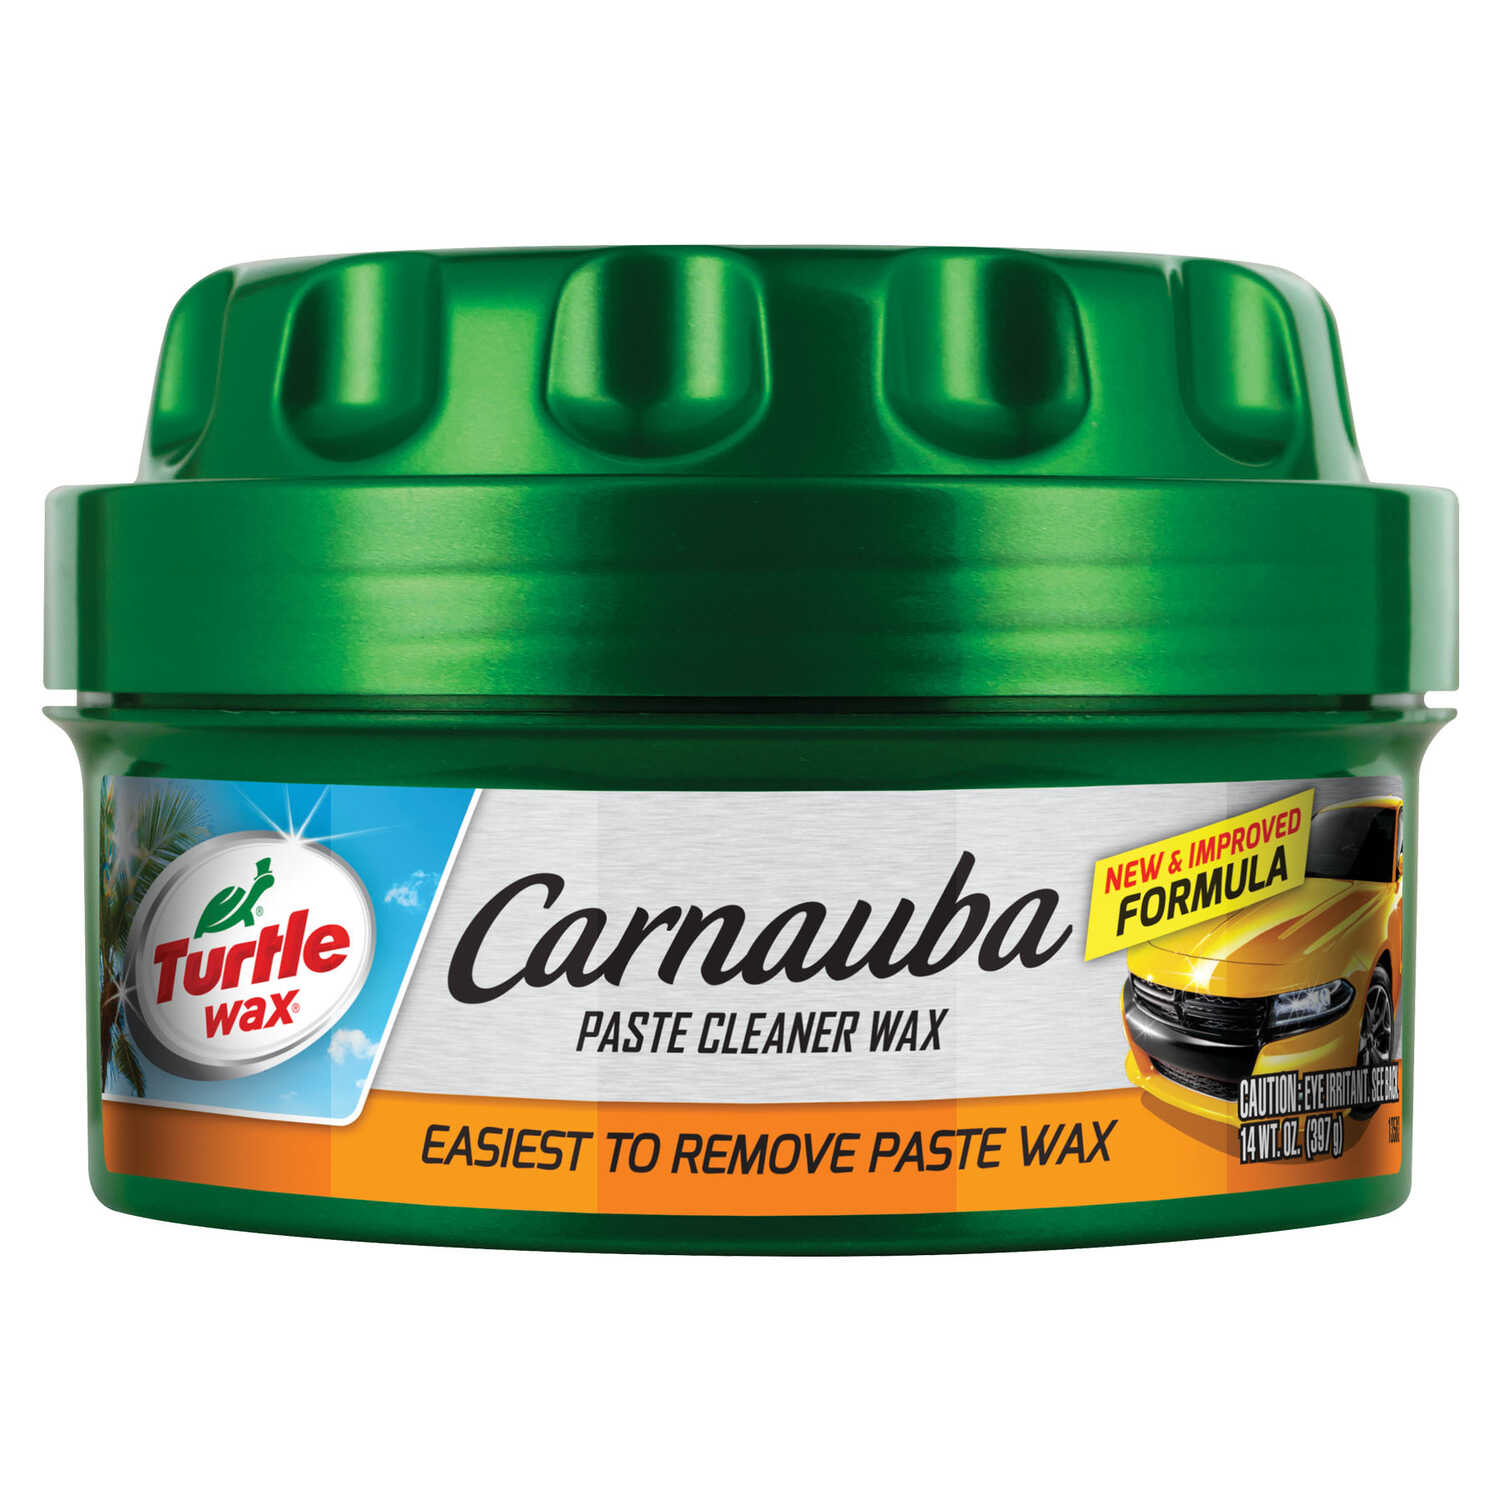 Turtle Wax  Carnauba  Wax  Automobile Wax  14 oz. For Removing Oxidation And Swirl Marks